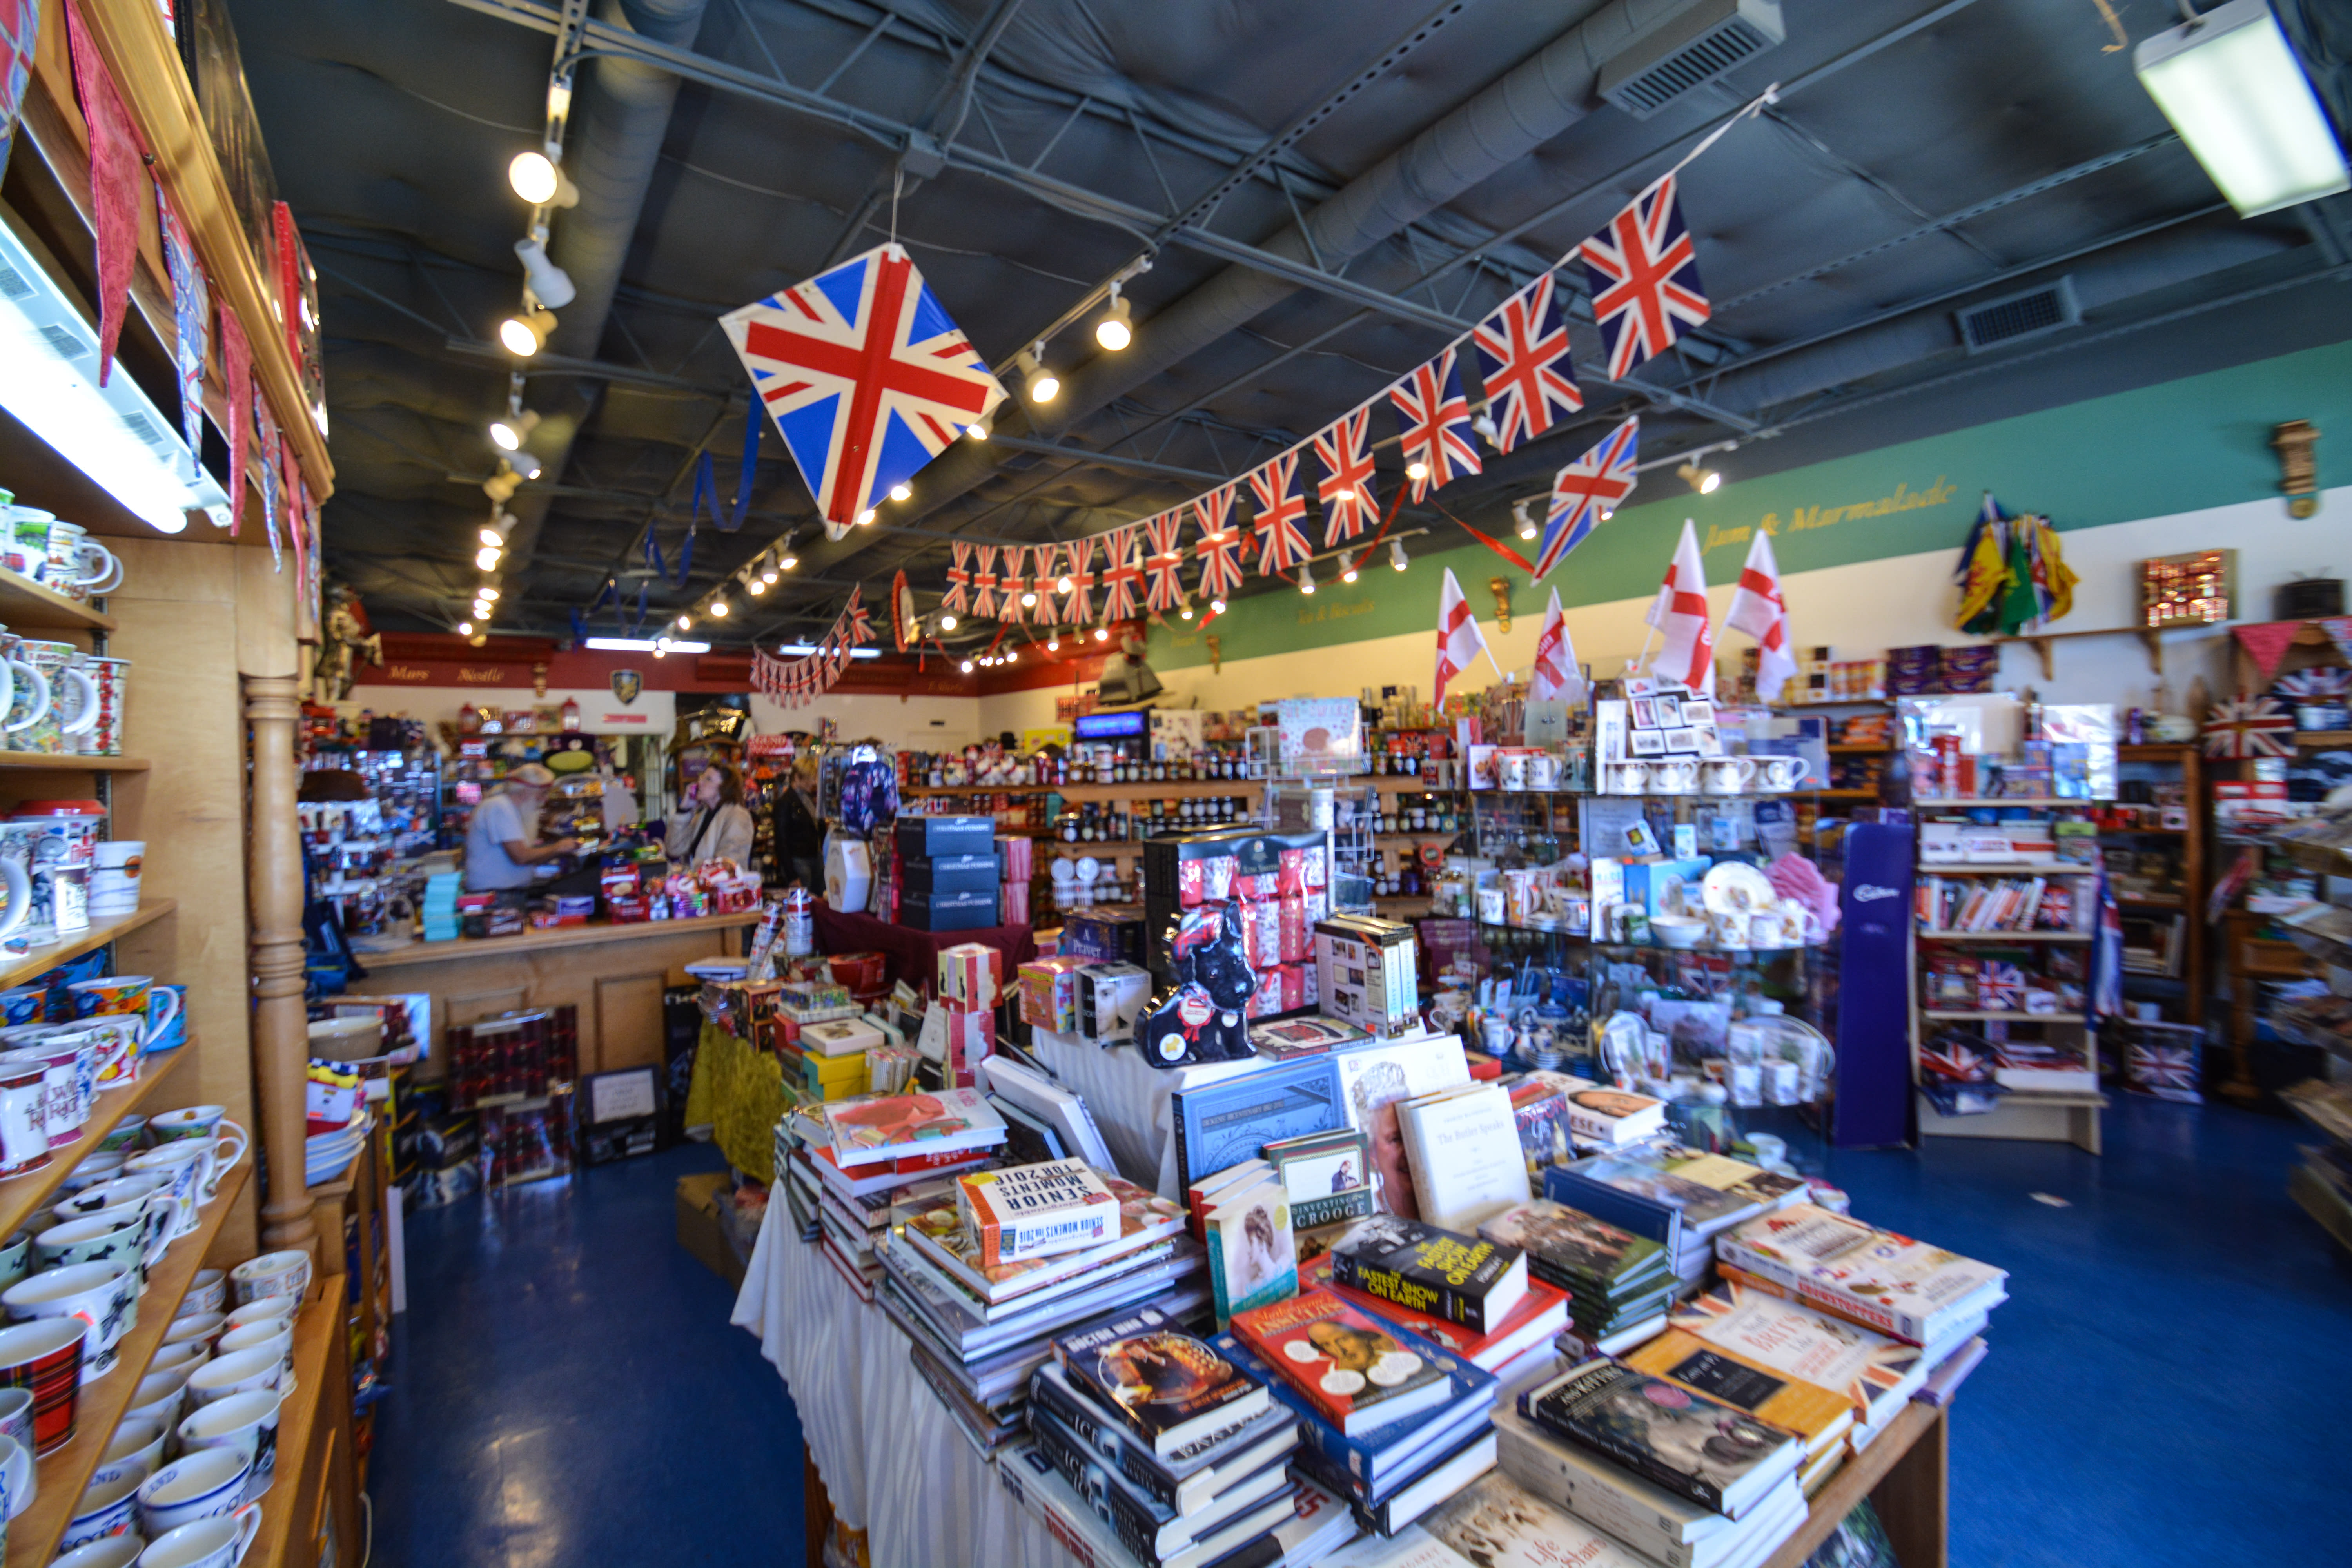 Discover the British Emporium in Grapevine, Texas